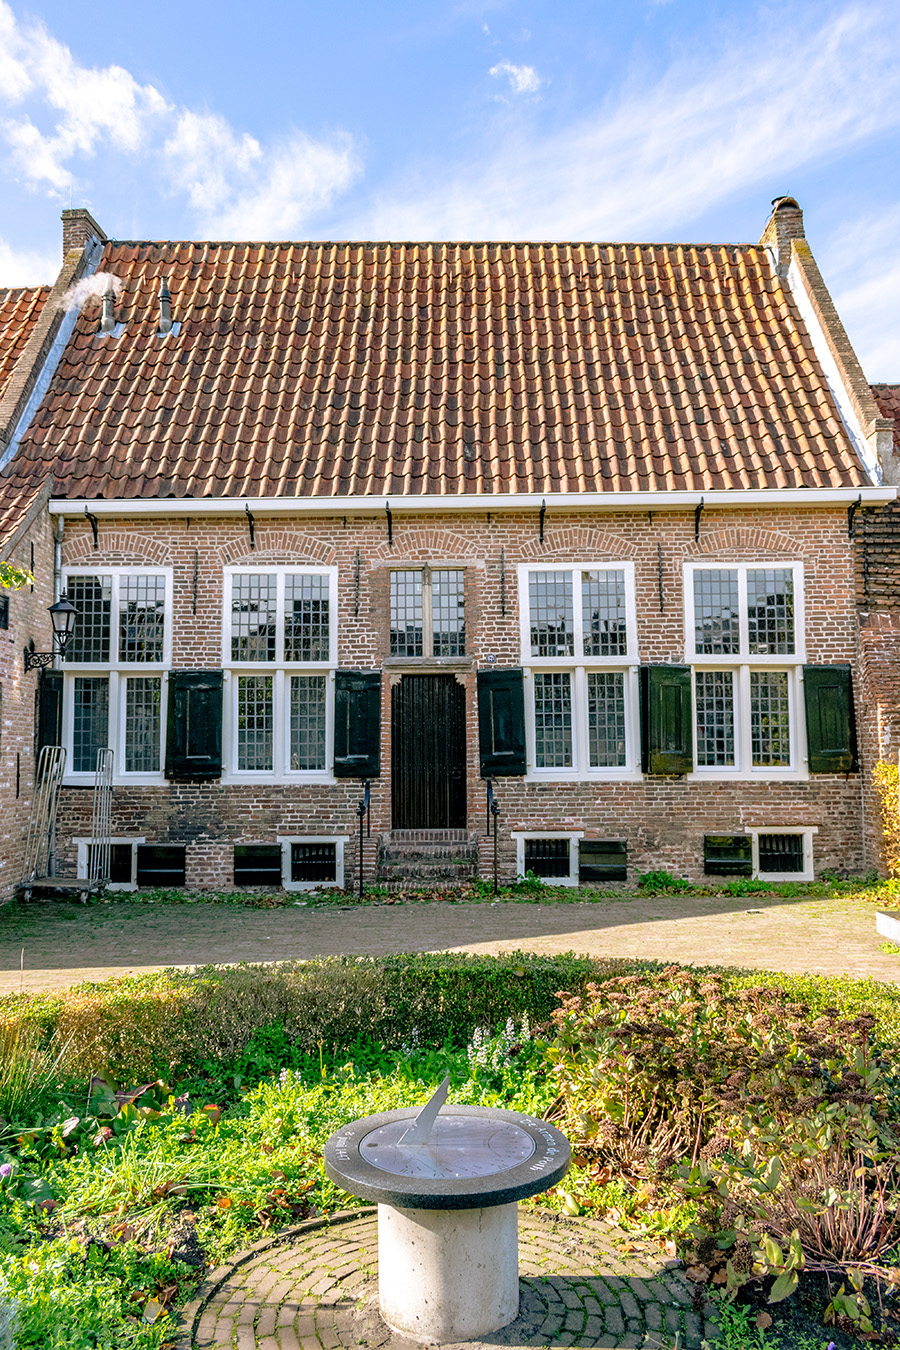 One of the beautiful houses within the courtyard, De Armen de Poth.  This hofje in Amersfoort was used to help plague victims! #hofje #nederland #amersfoort #netherlands #travel